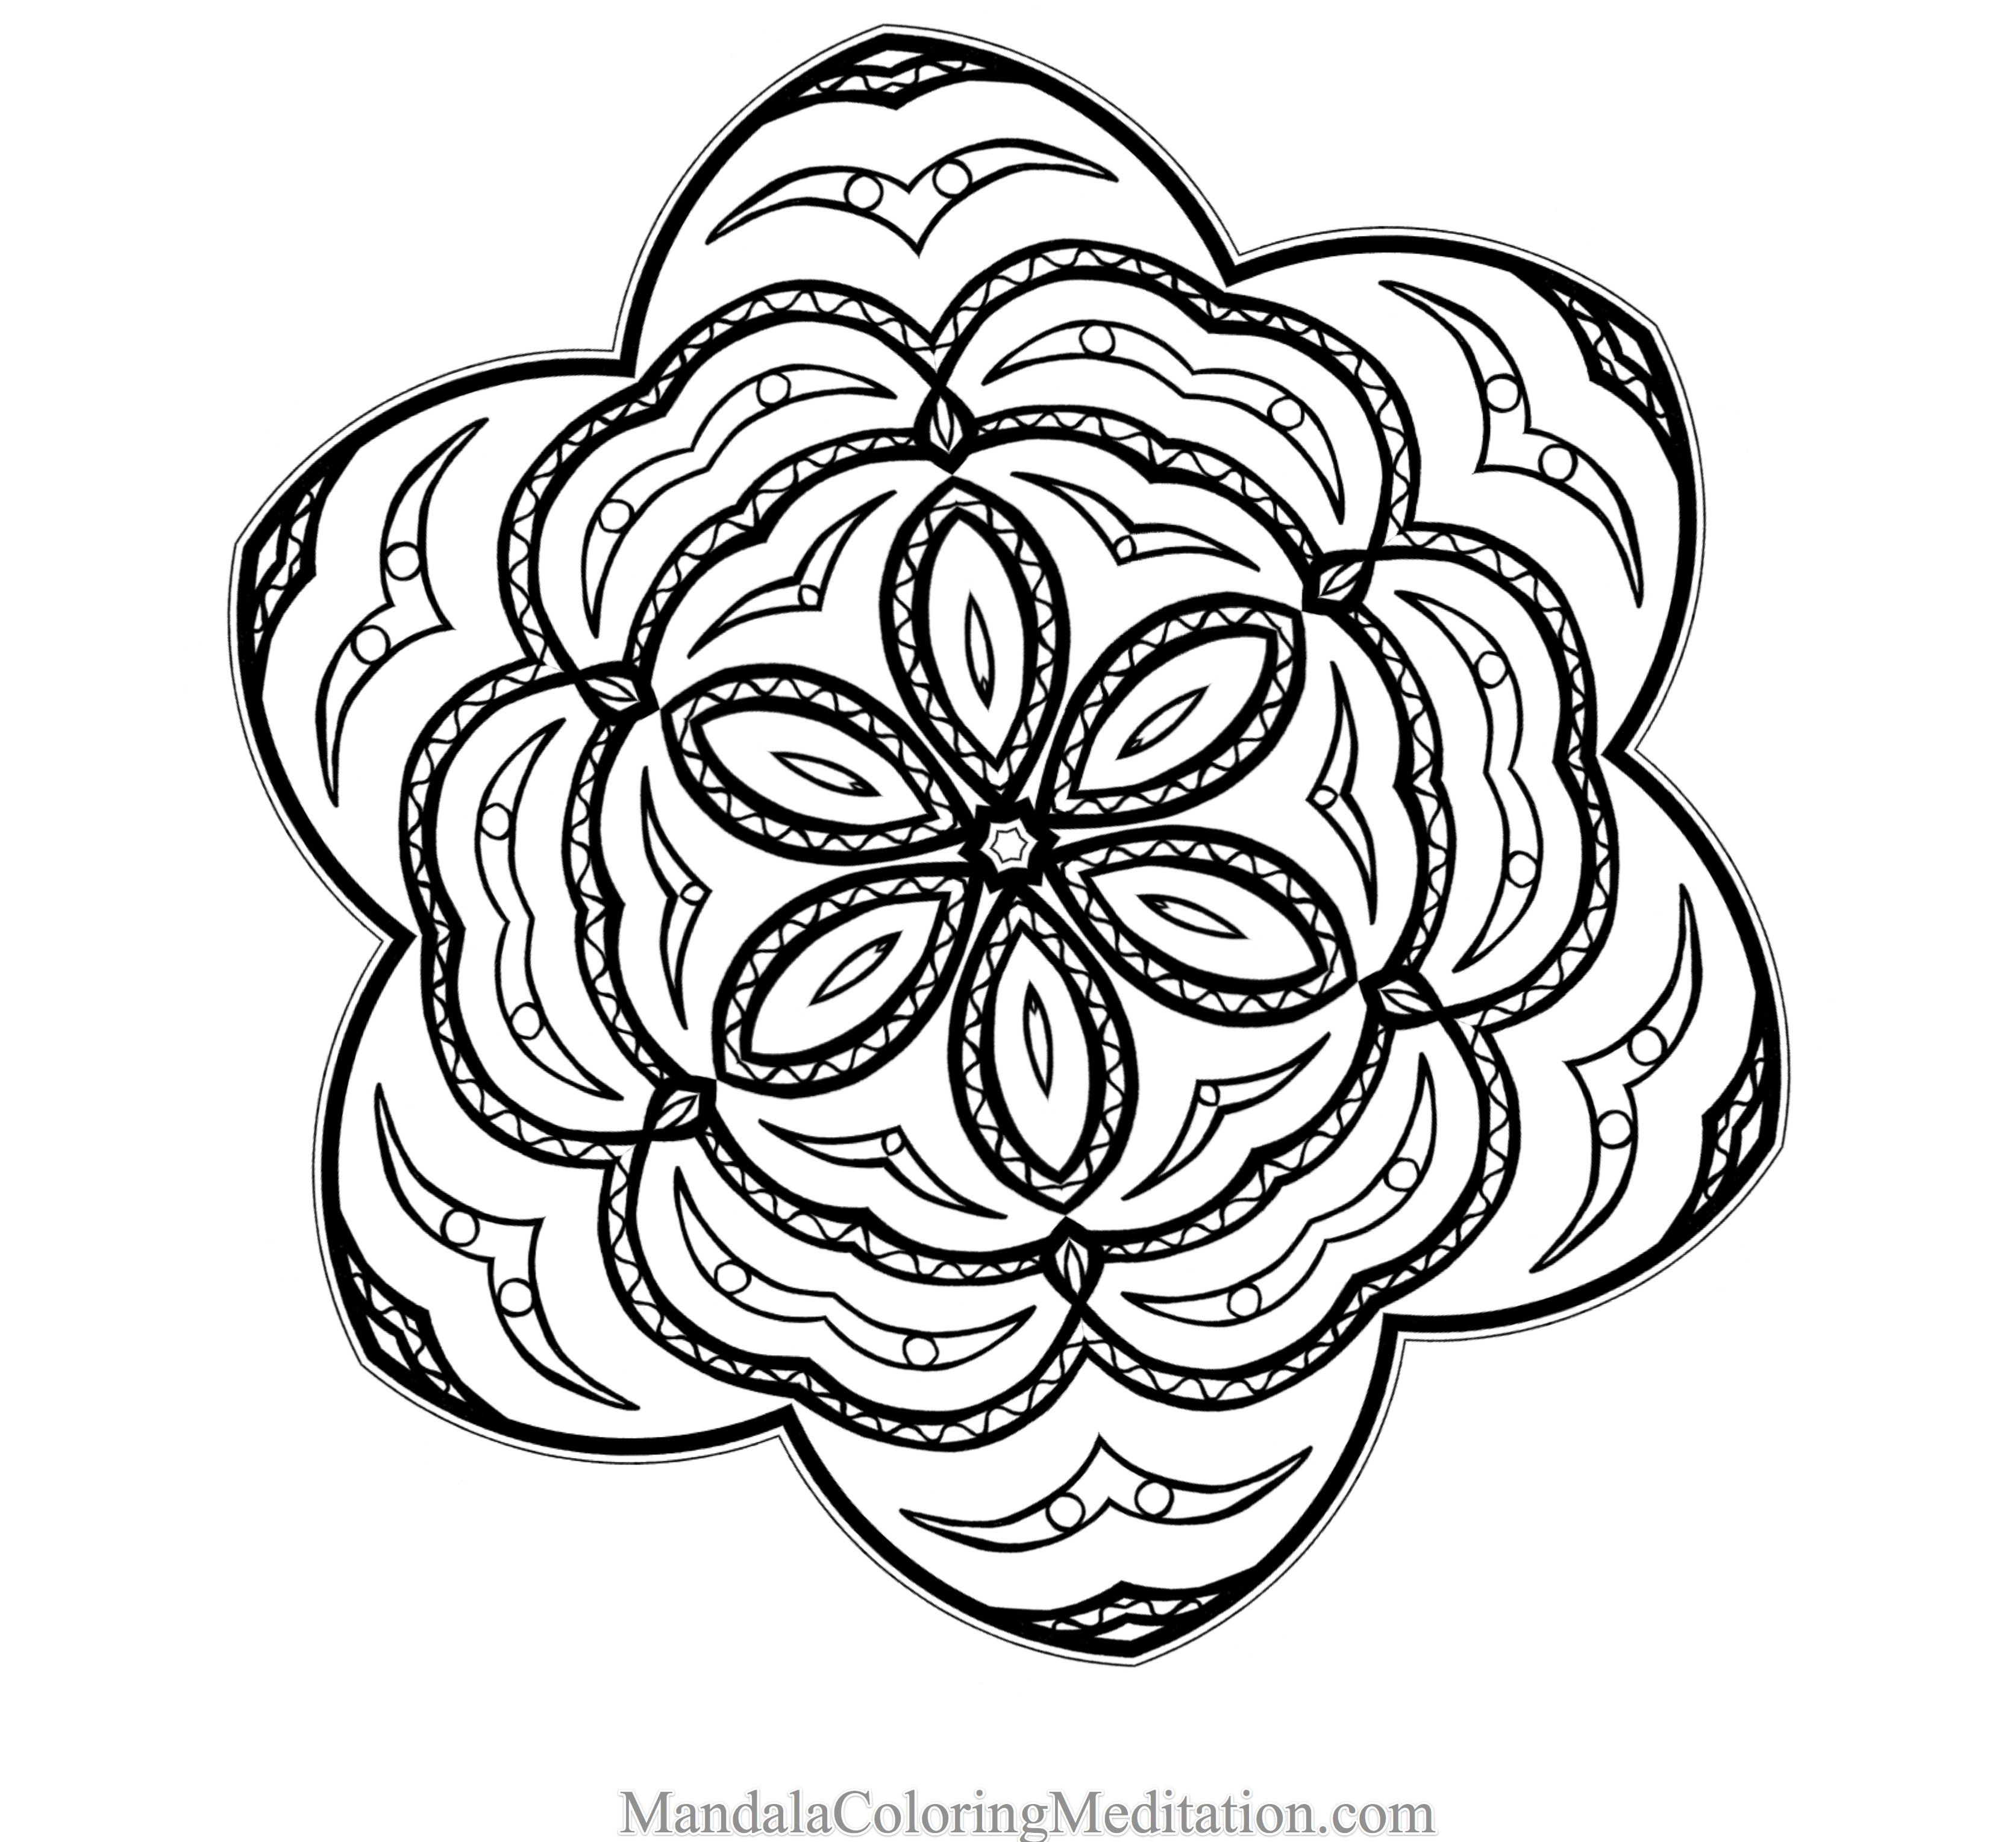 Best mandala coloring pages - Free Printable Coloring Pages Of Zacchaeus Best Coloring Pages